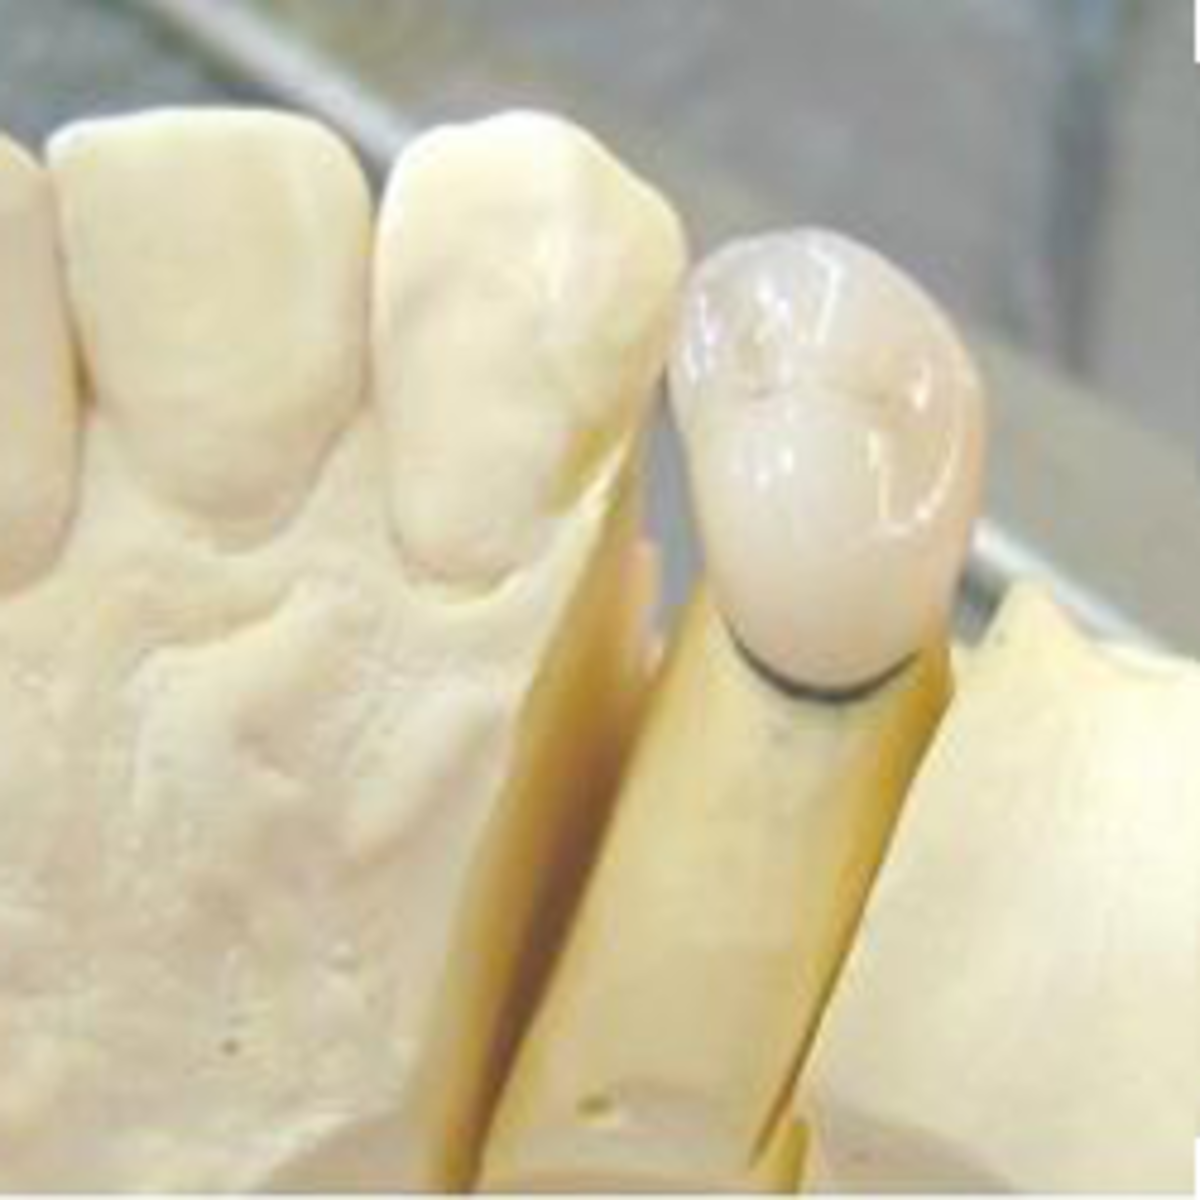 ★ How Dental PFM Crowns are Made | Step-by-Step Photos ★